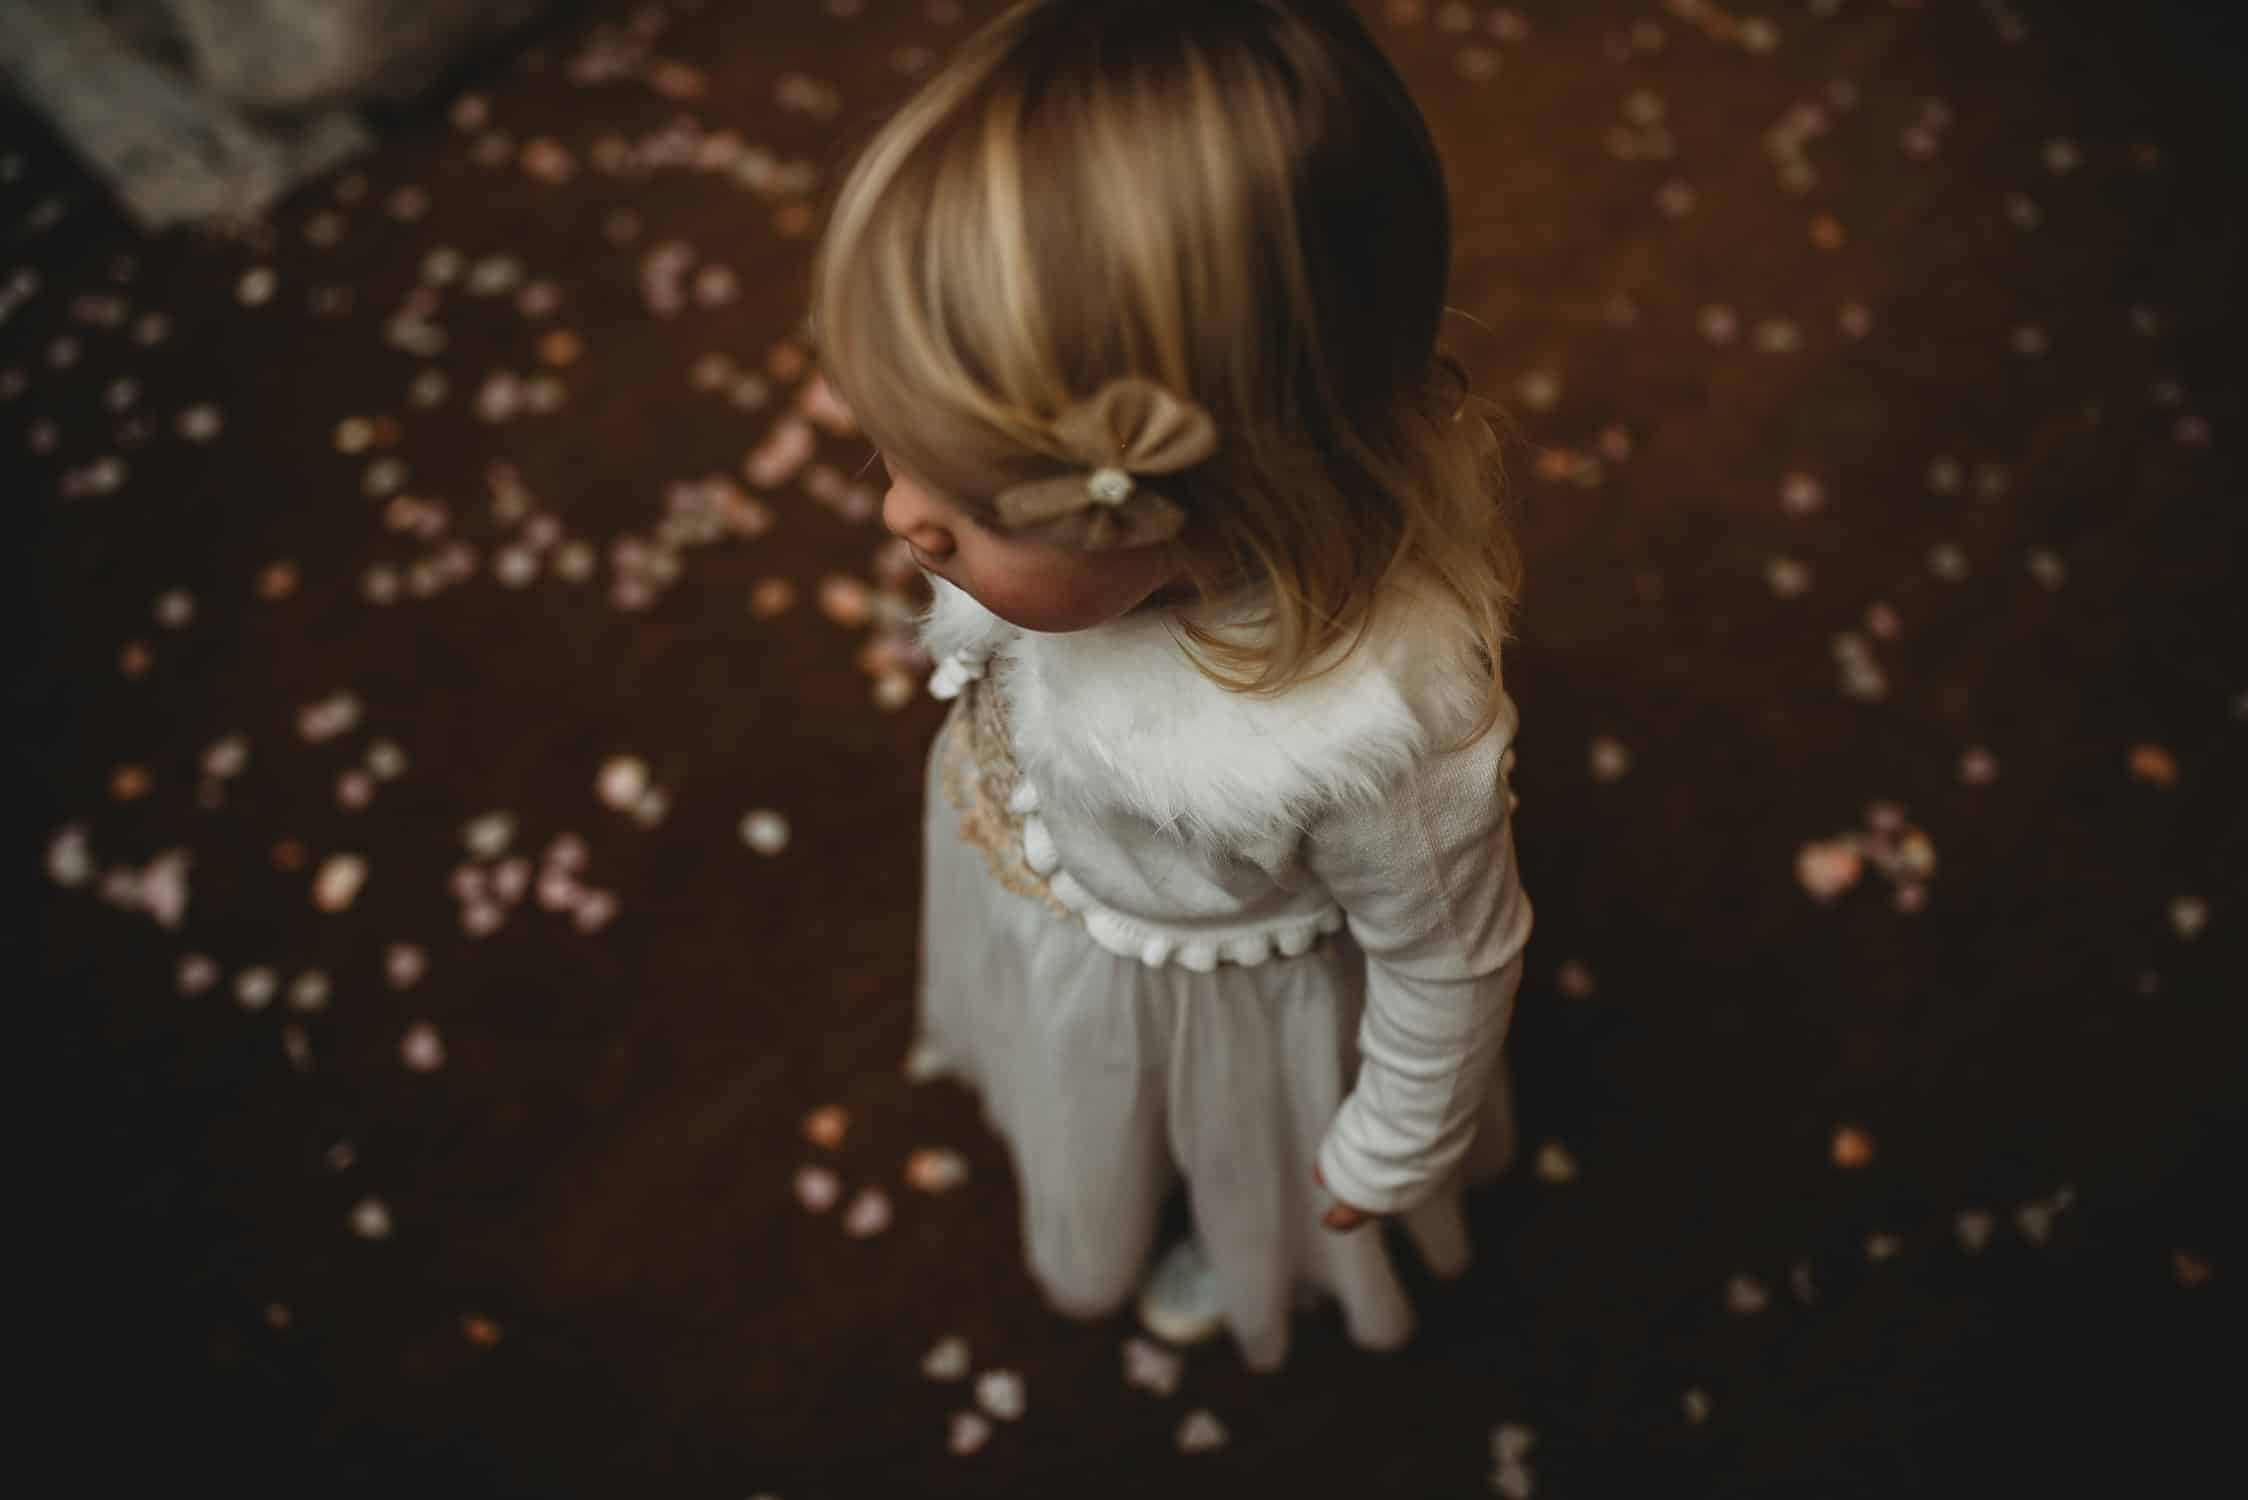 close-up of little girl from above with confetti on the floor